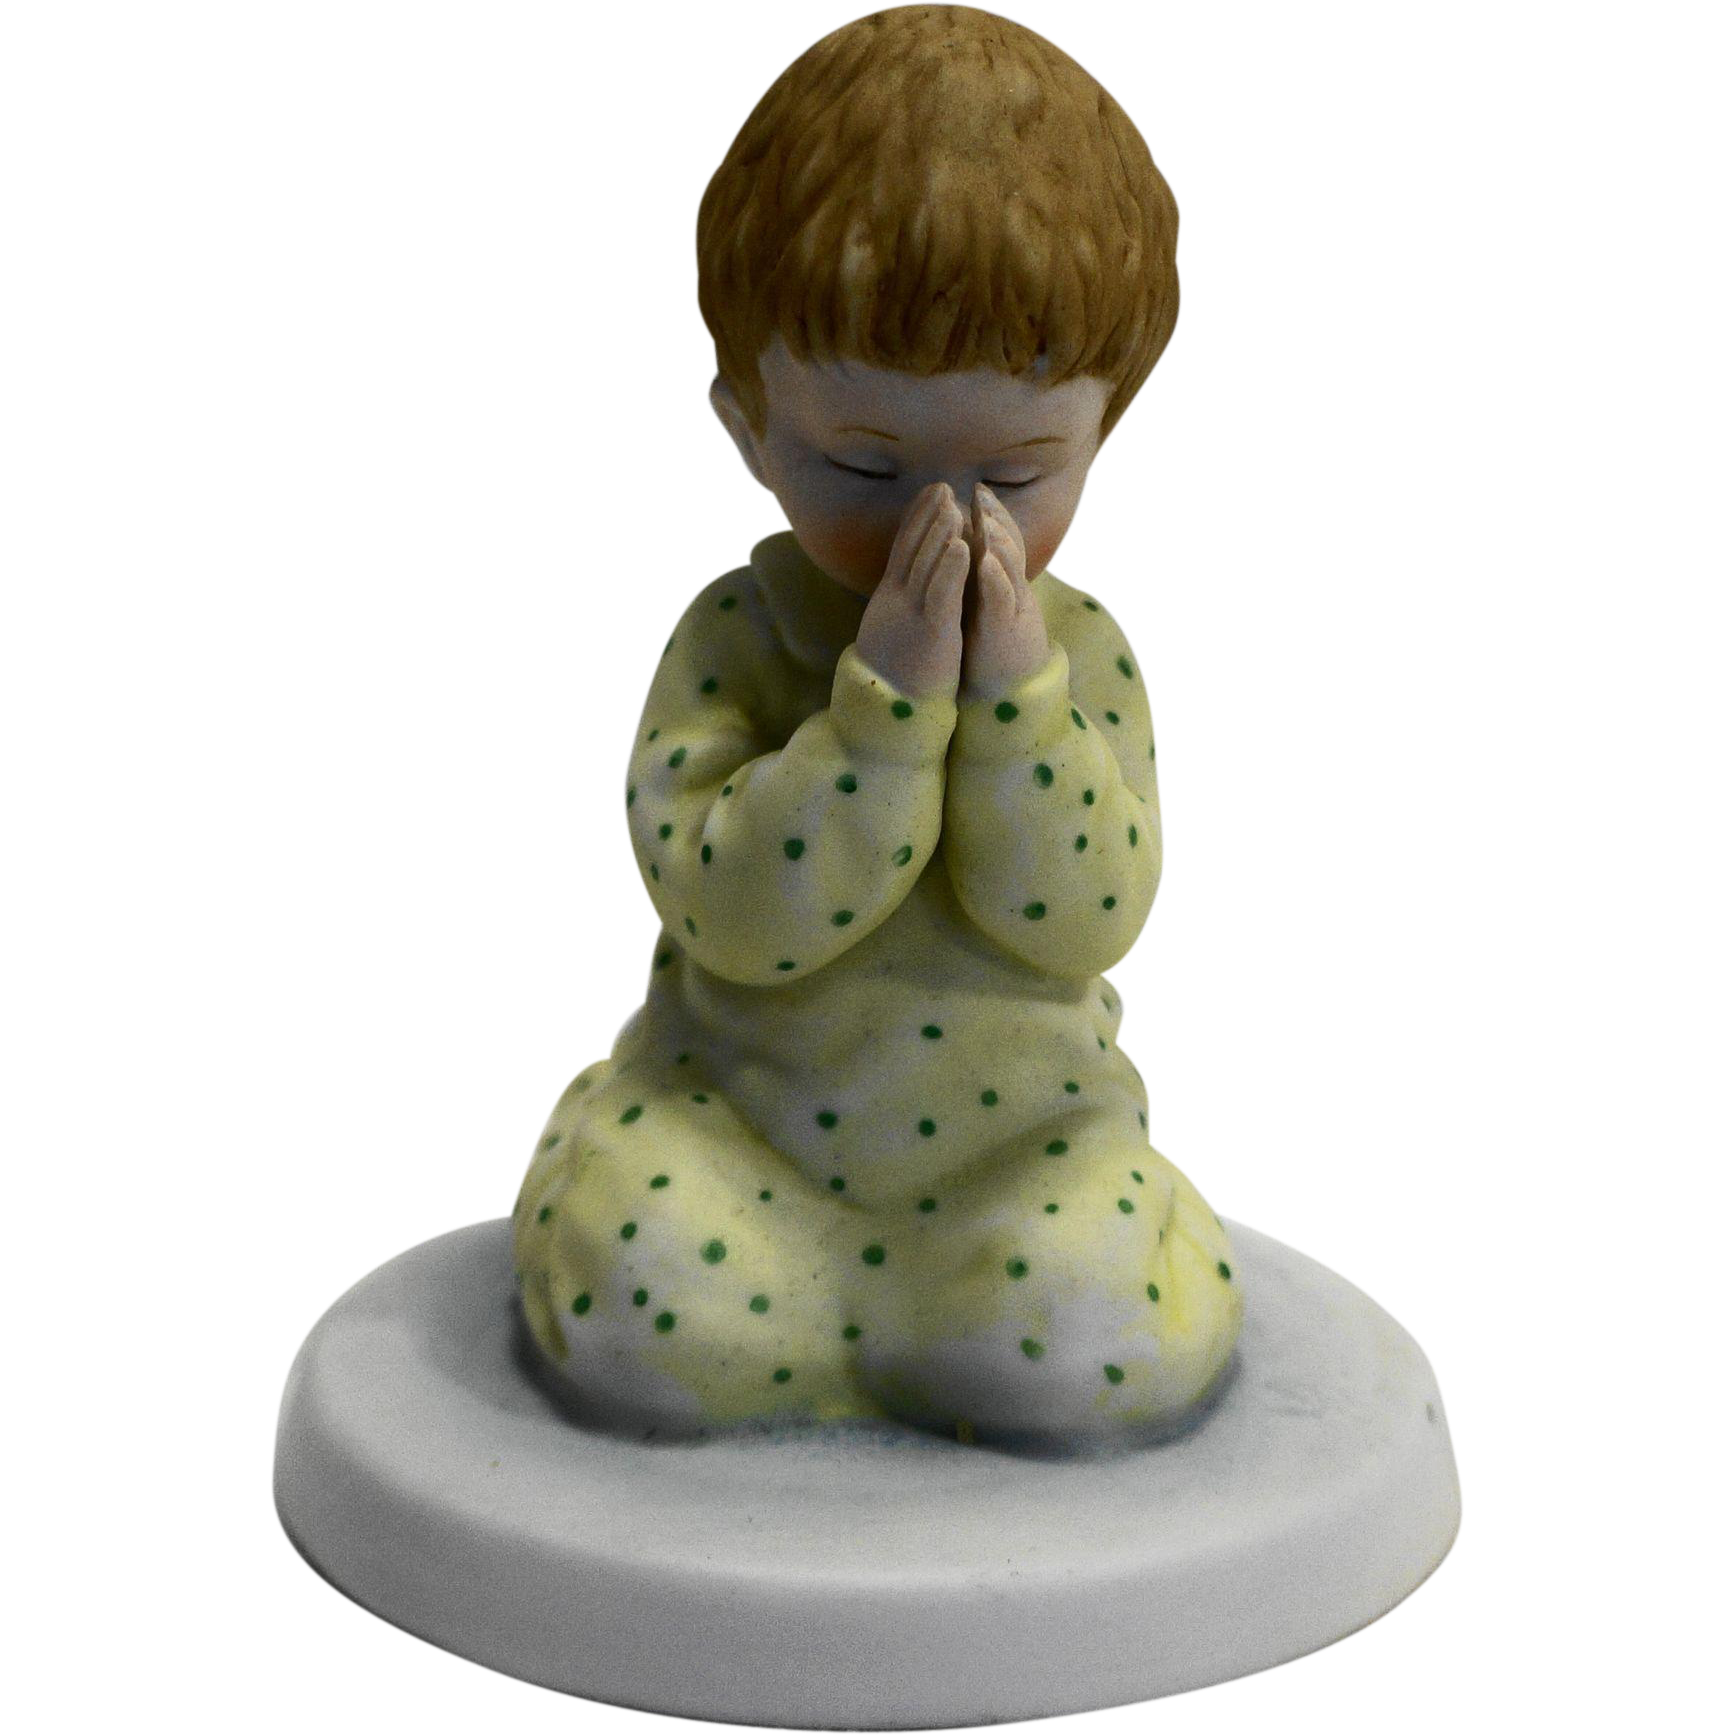 Nighttime Thoughts A Child's World Porcelain Figurine Frances Hook